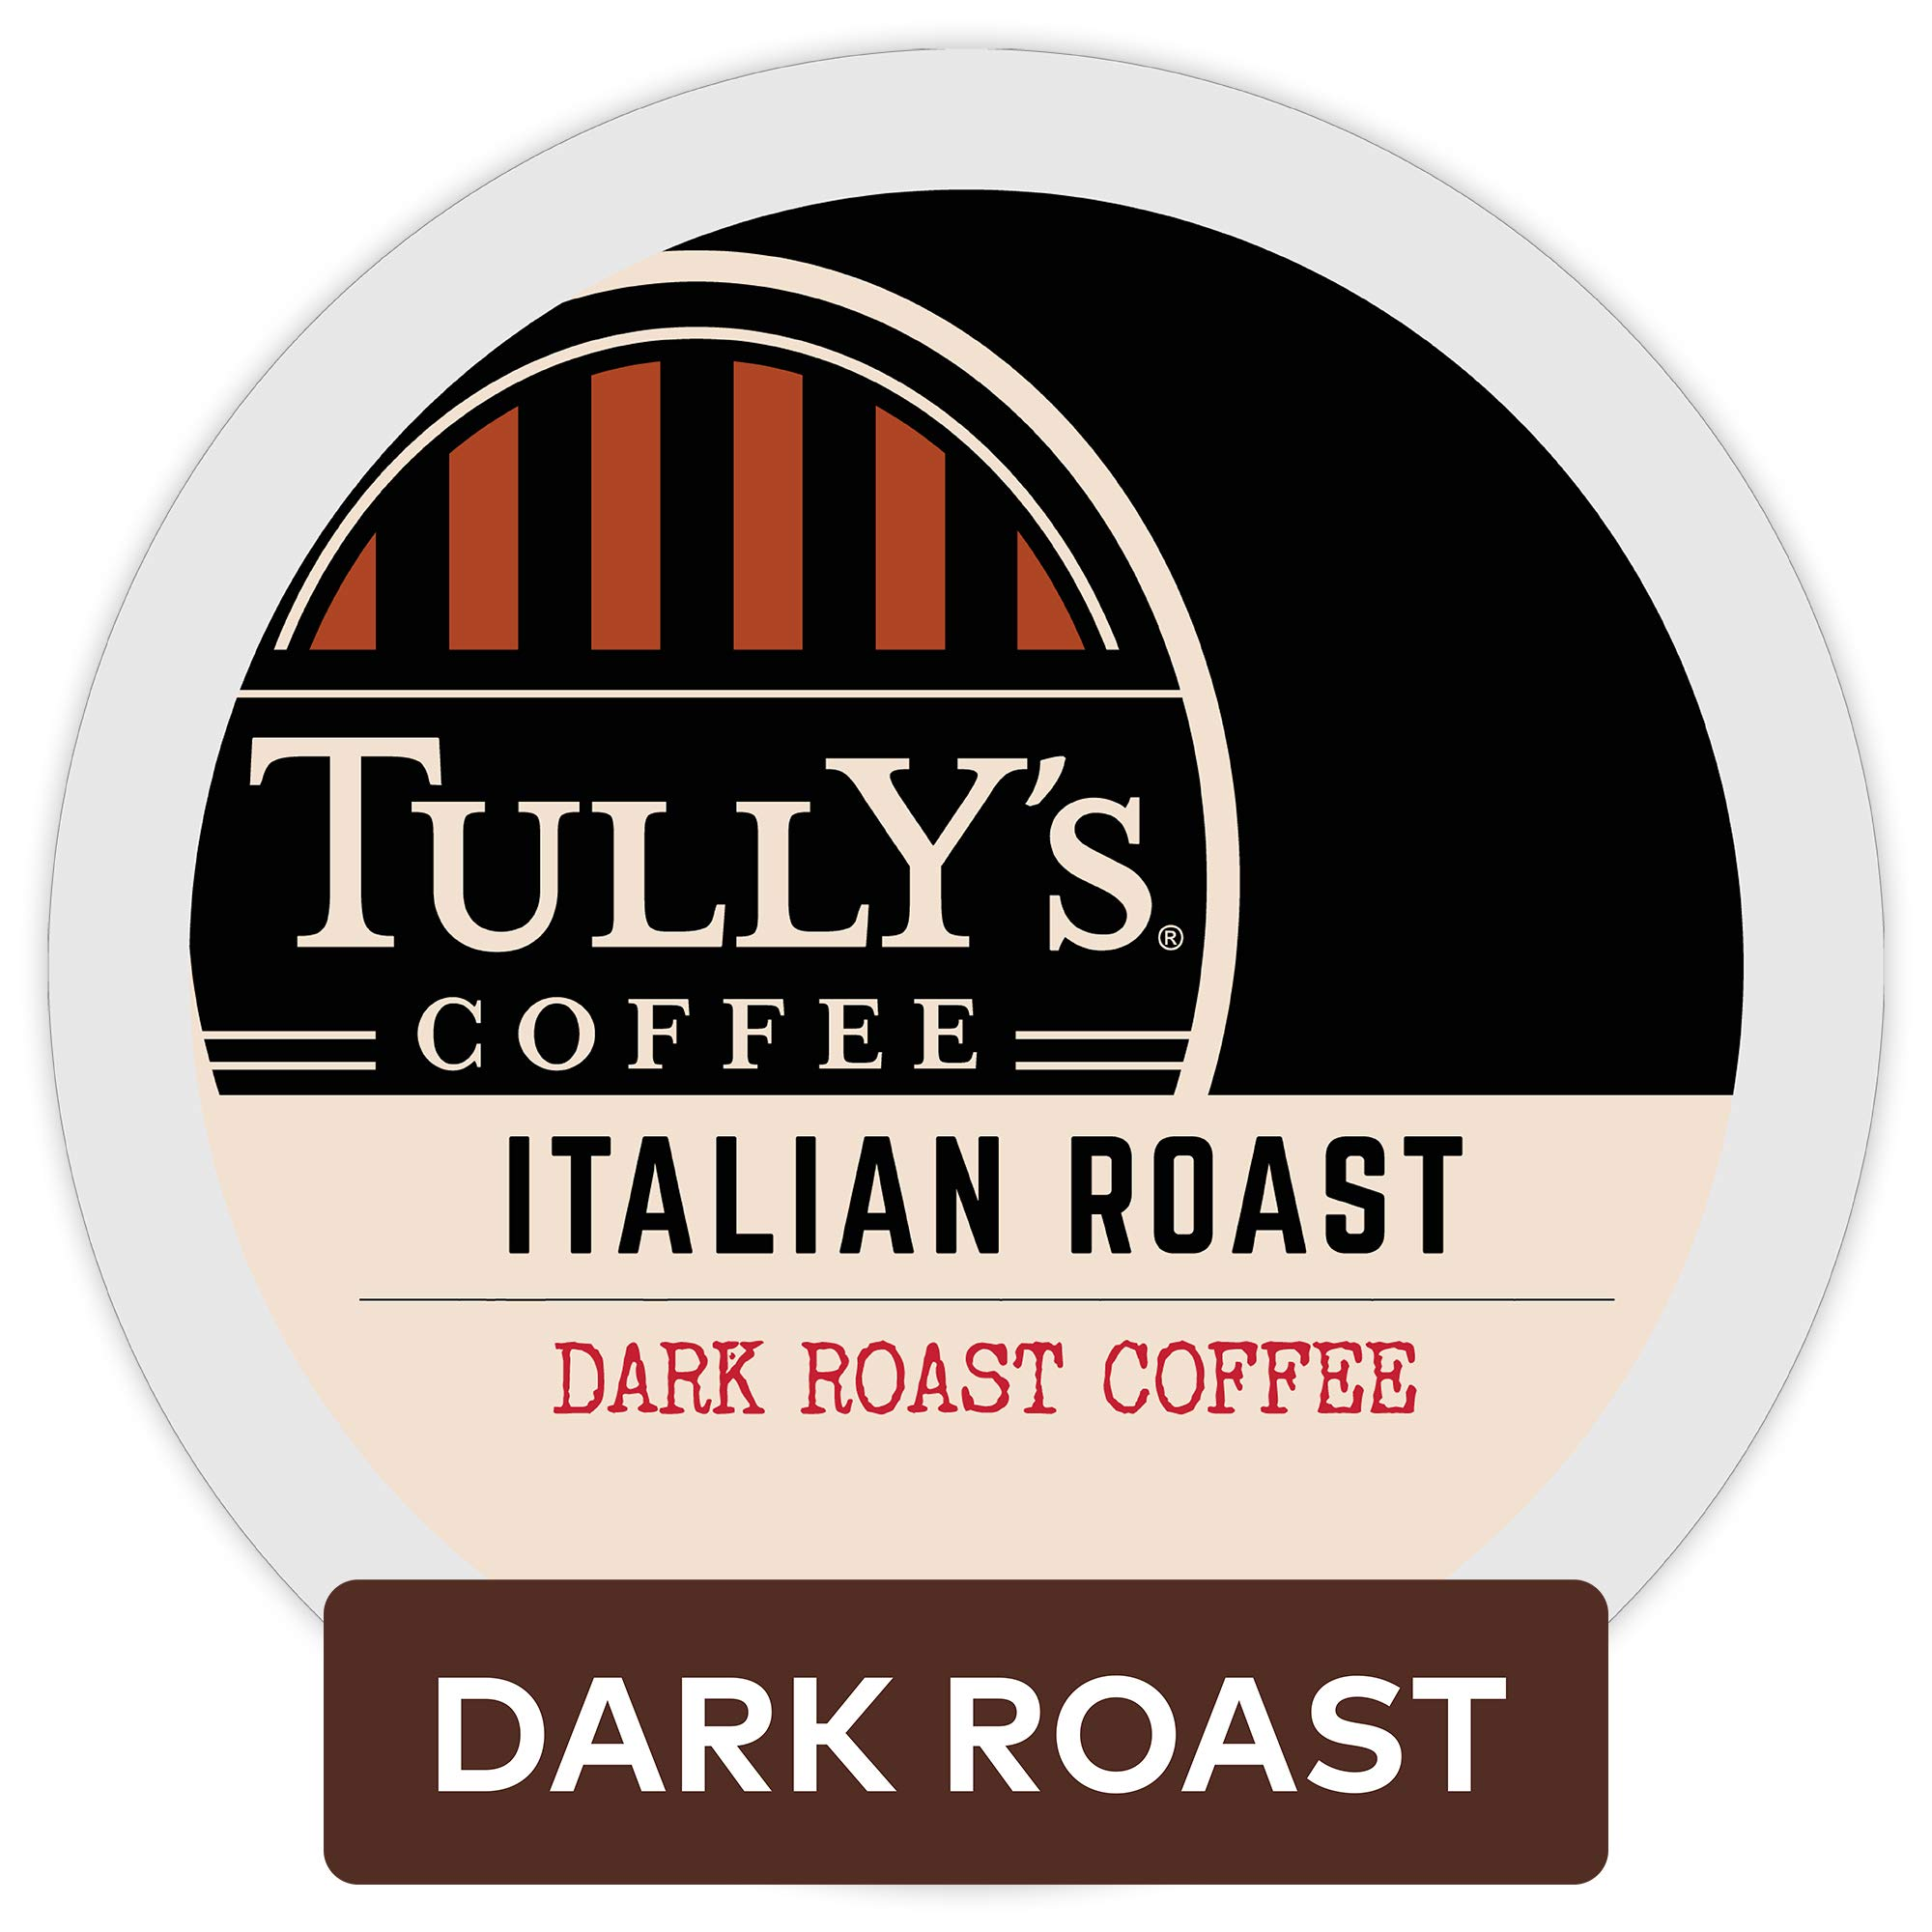 Tully's Coffee, Italian Roast, Single-Serve Keurig K-Cup Pods, Dark Roast Coffee, 96 Count (4 Boxes of 24 Pods)